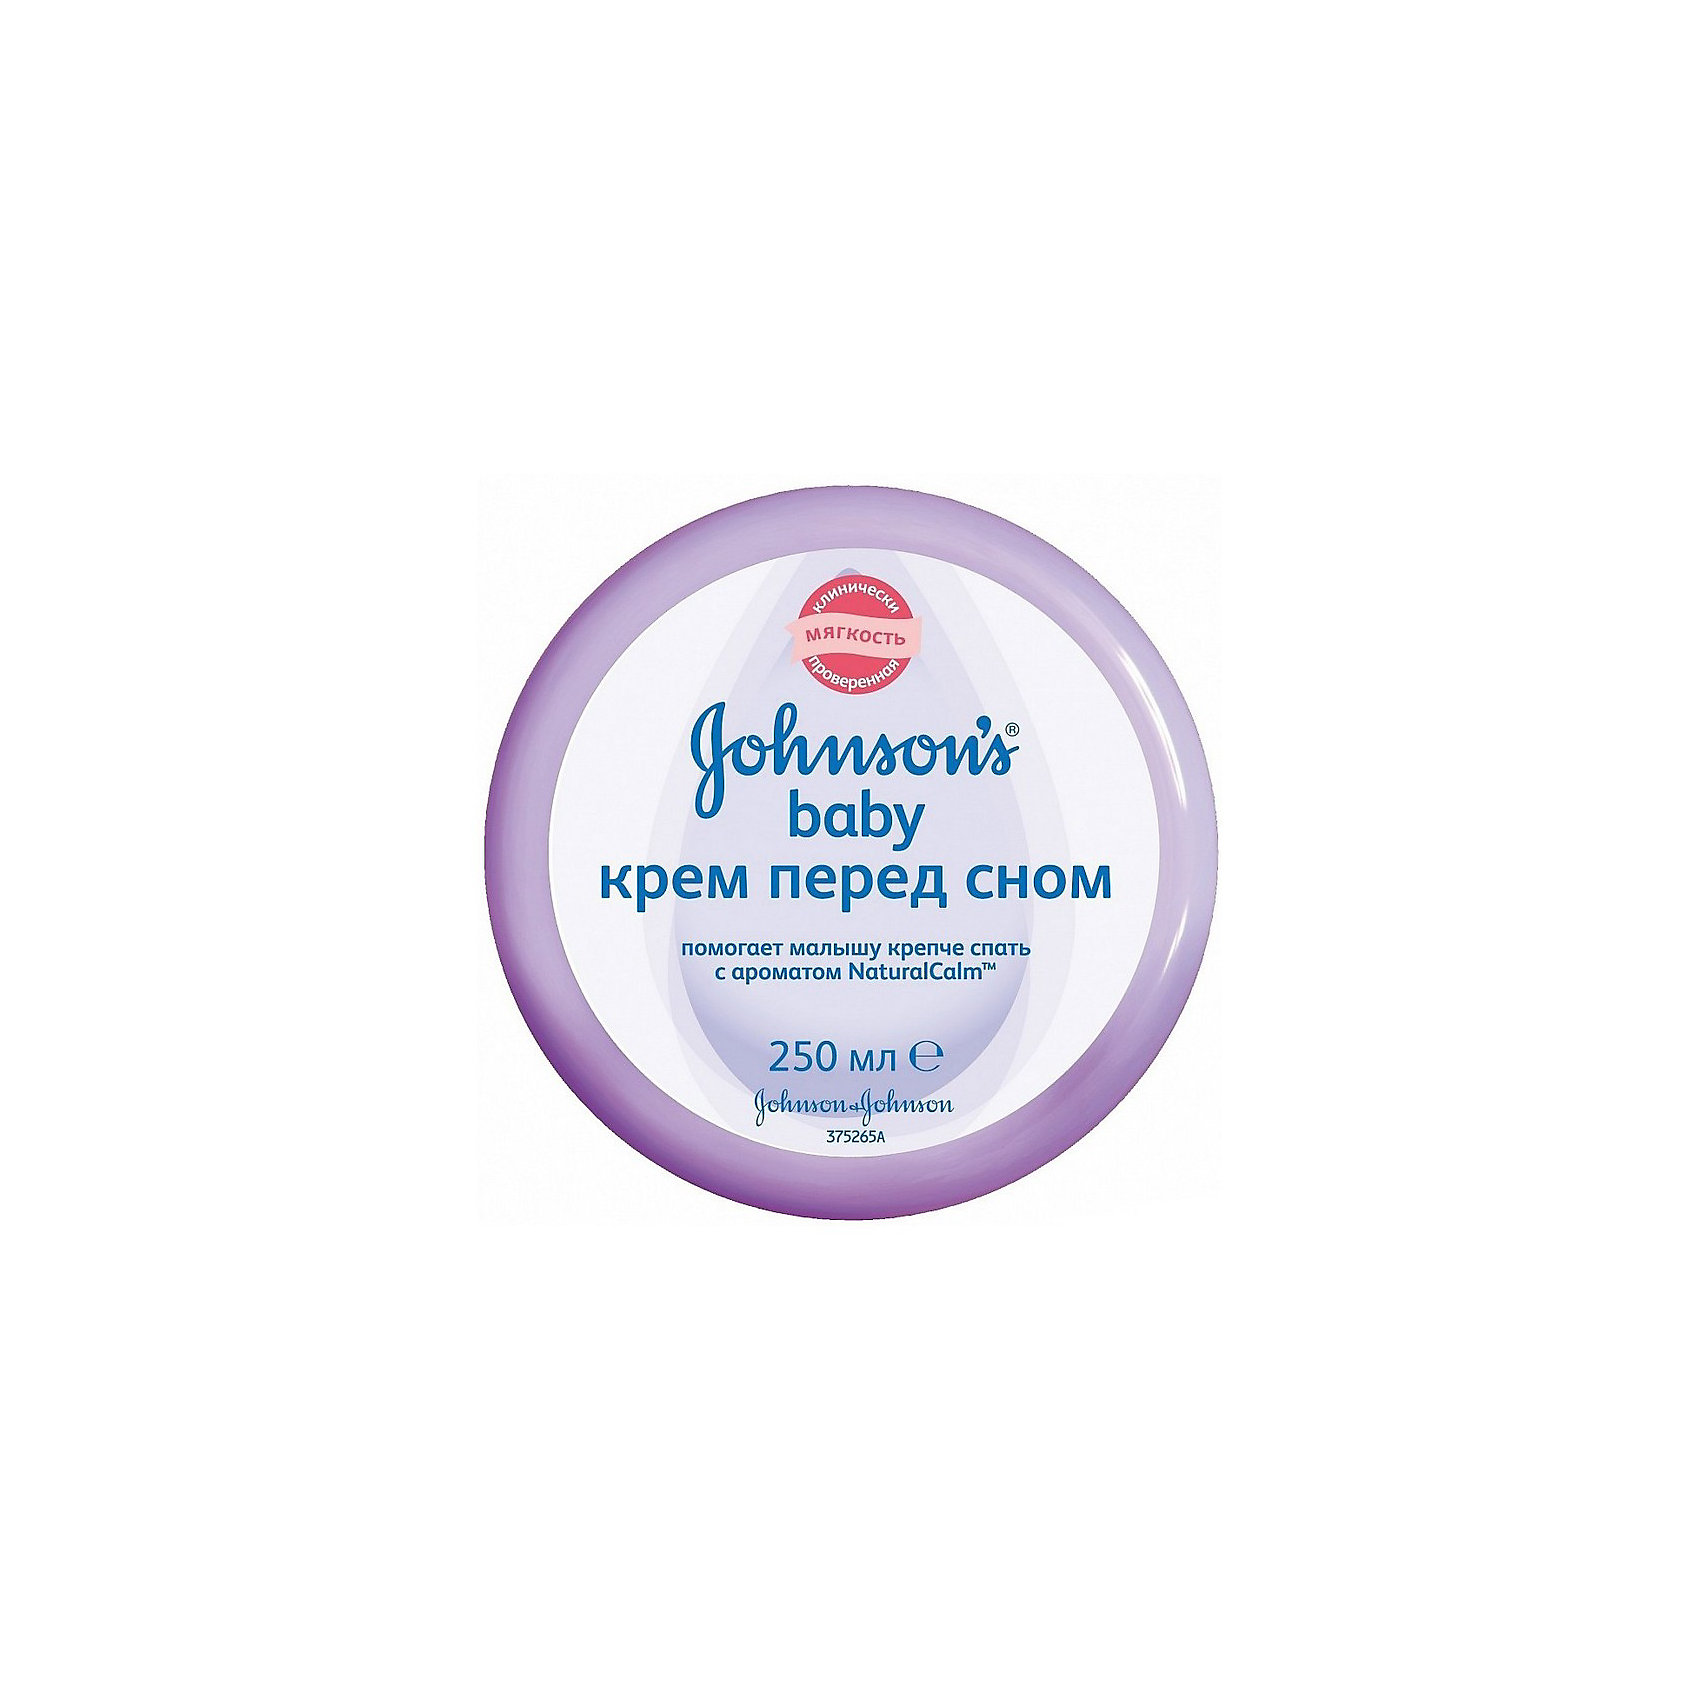 Johnson`s baby Детский крем перед сном, Johnson`s baby, 250 мл wireless table call paging system with show 3 digit number display and 100% waterproof call bell 1 display 2 call button